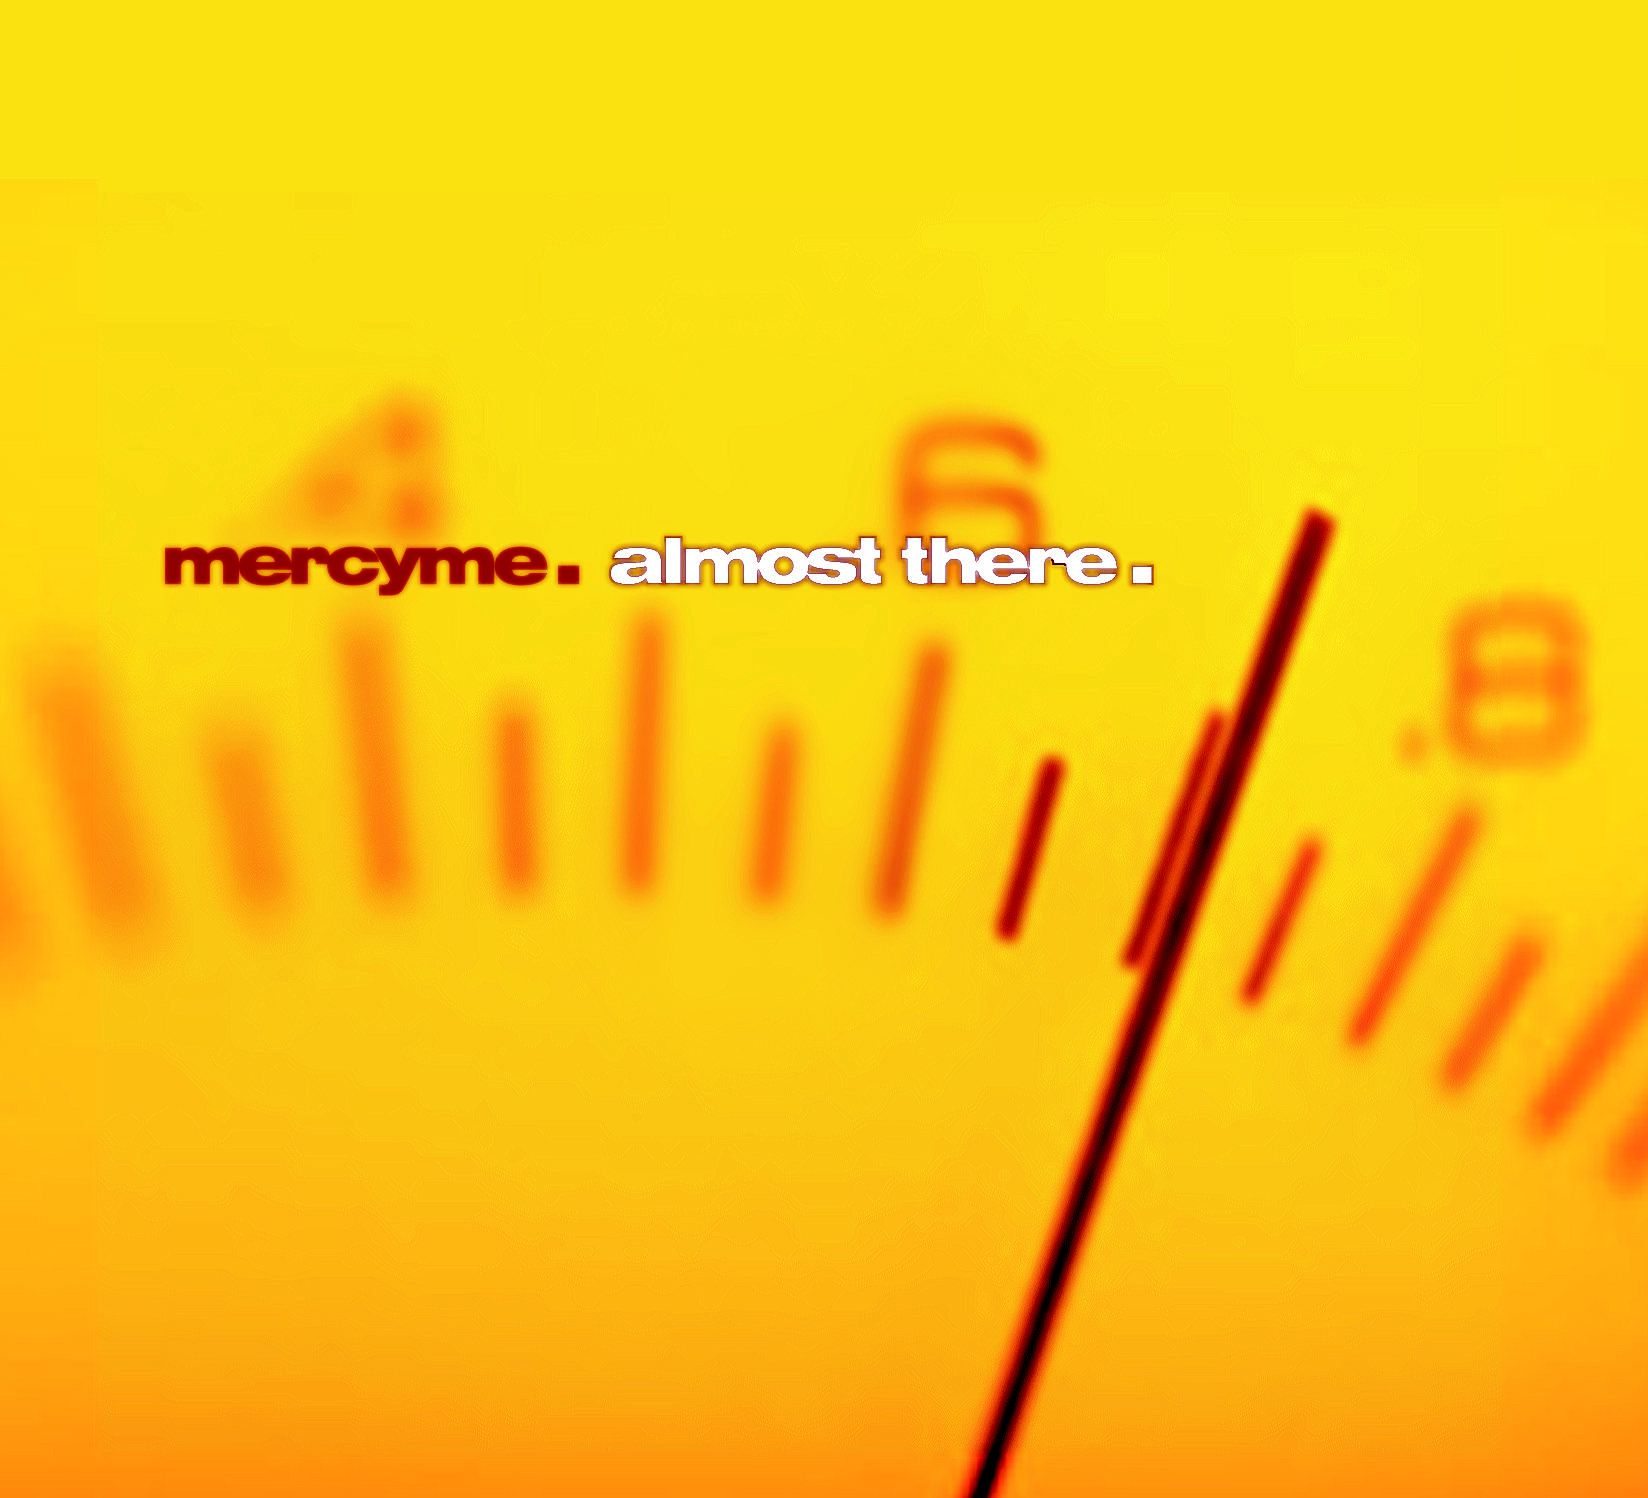 MercyMe - Almost There